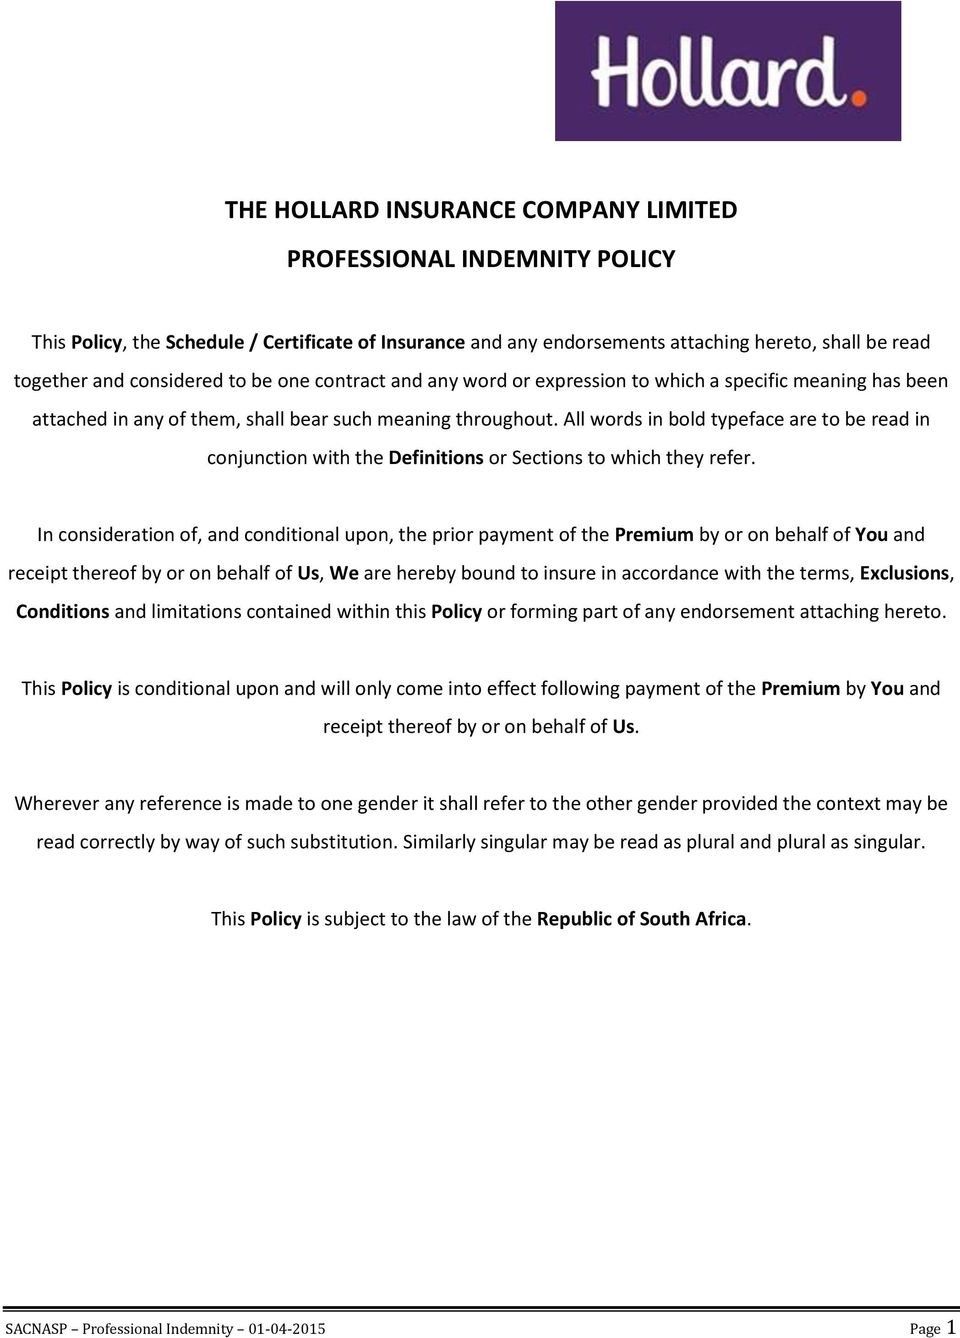 The Hollard Insurance Company Limited Professional Indemnity